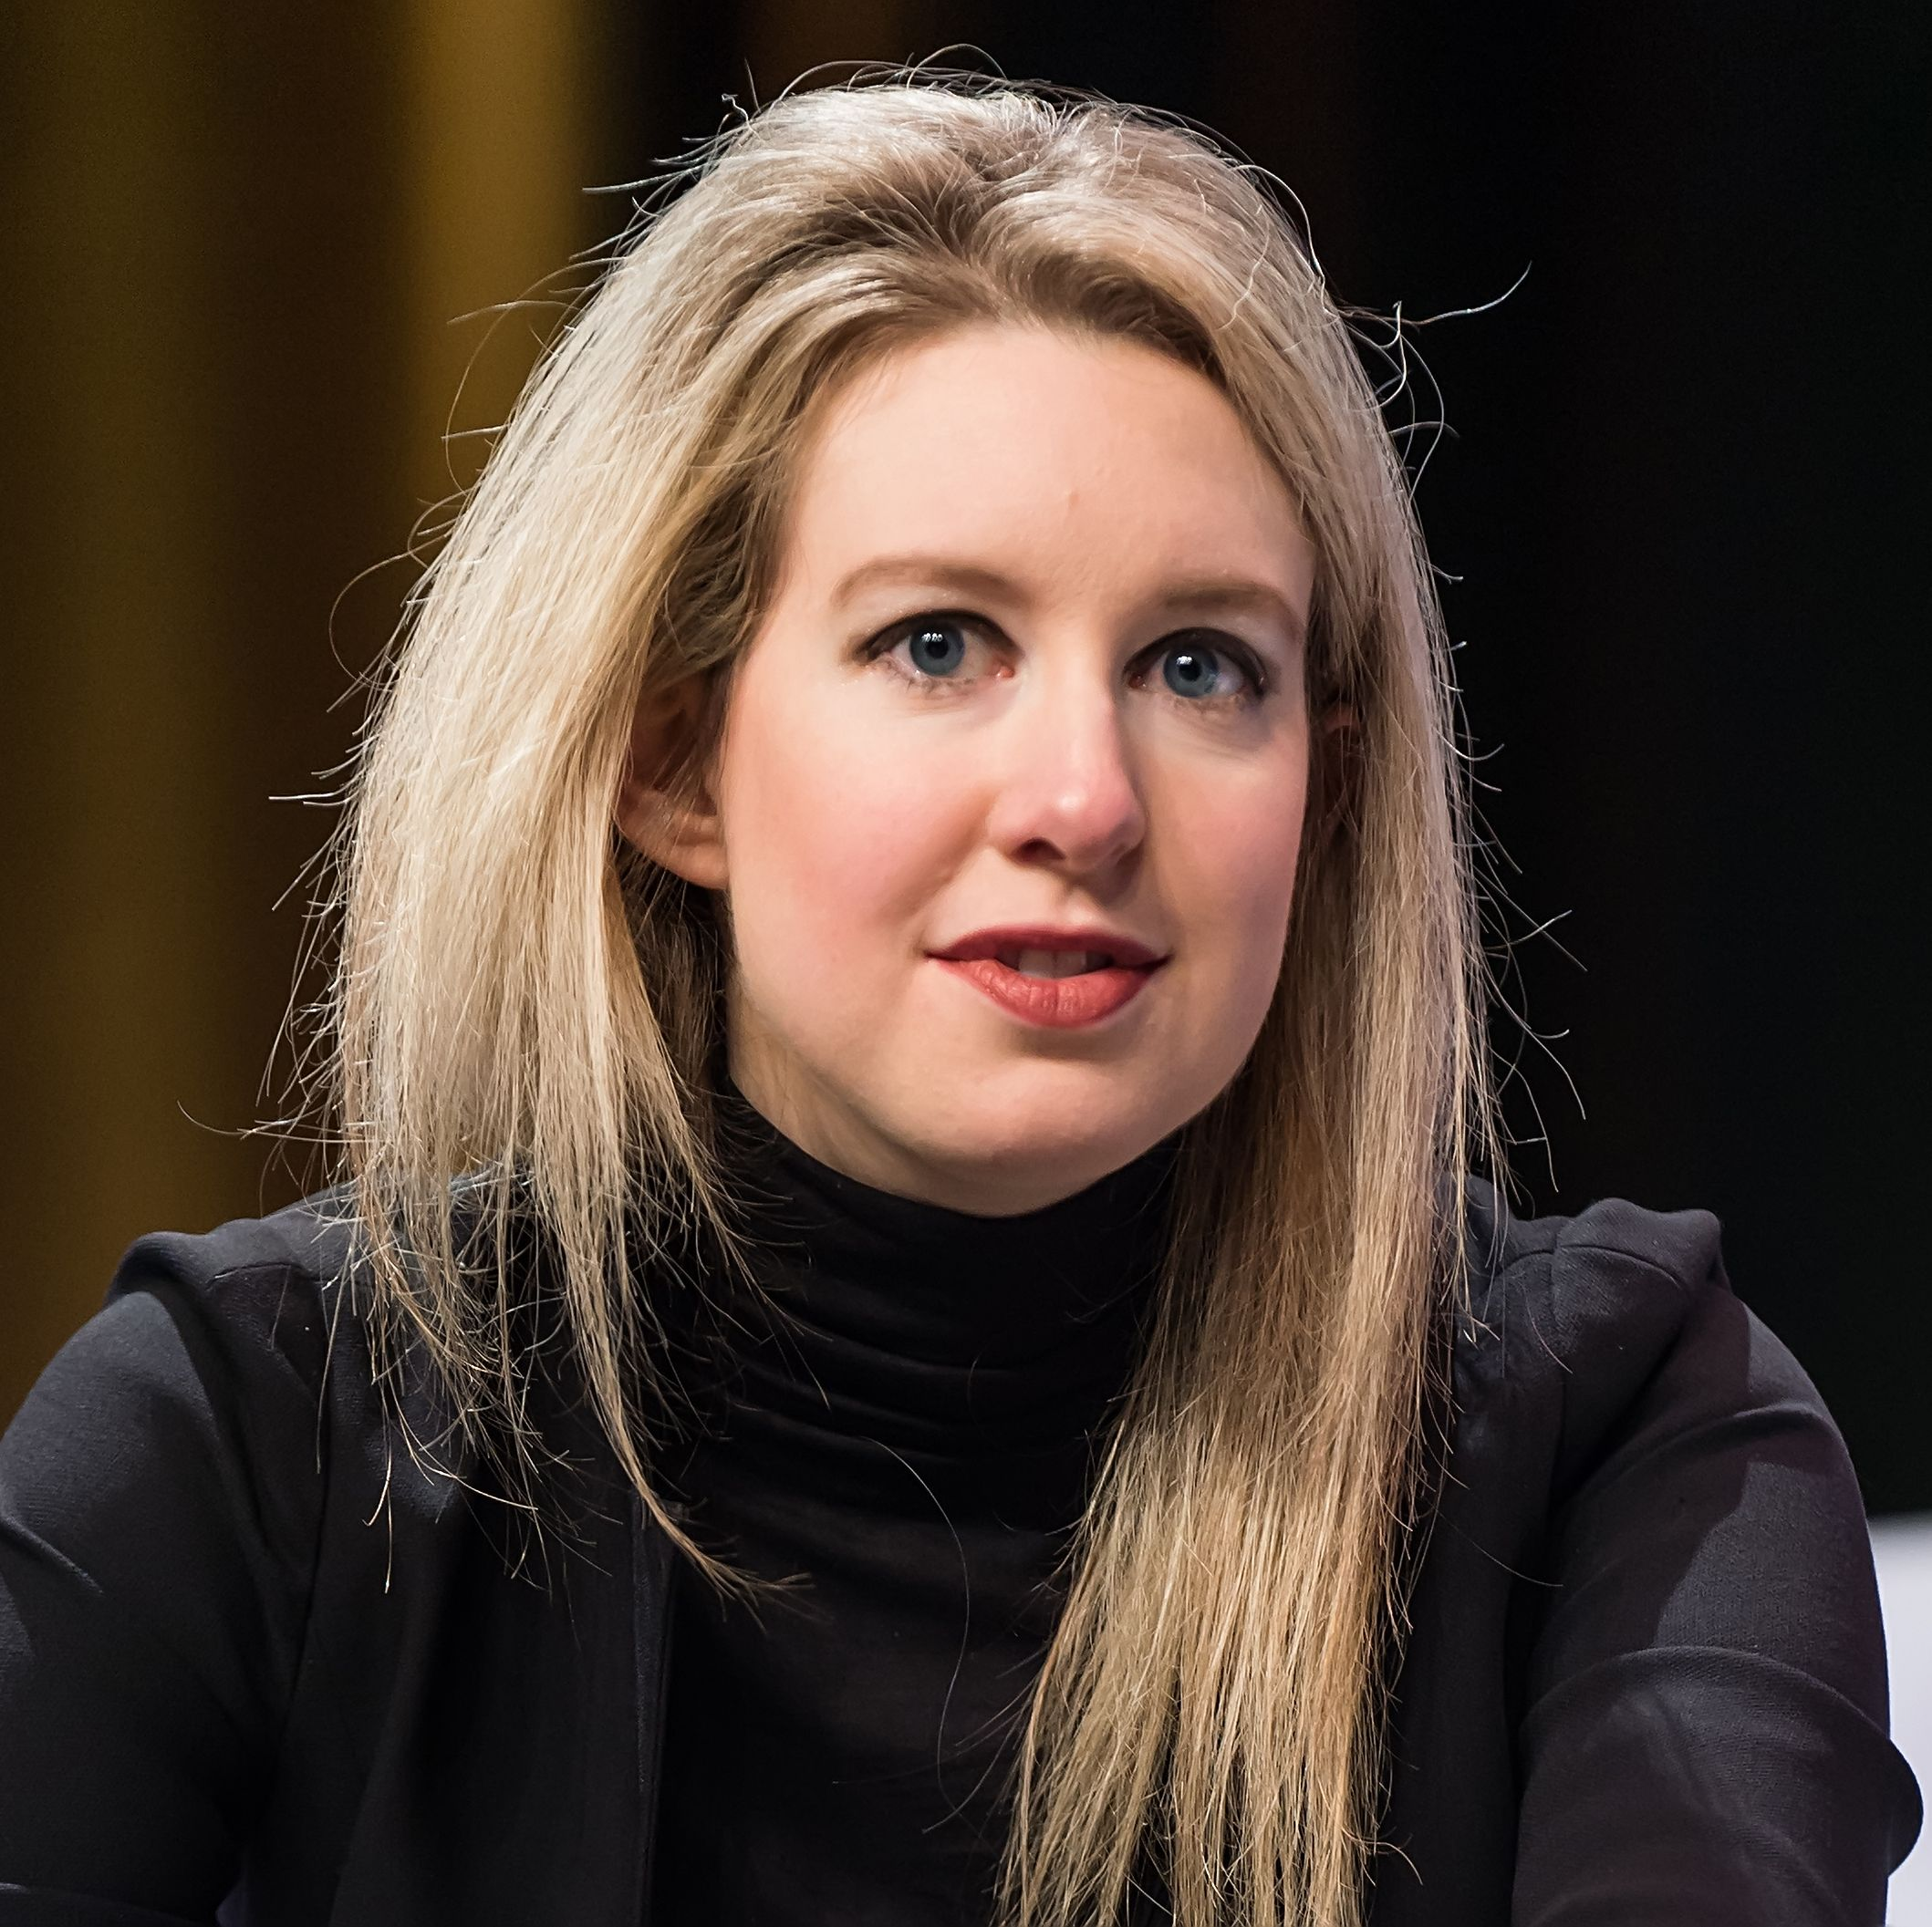 Elizabeth Holmes Reportedly Lives 'in a Luxury Apartment' as She Awaits Trial